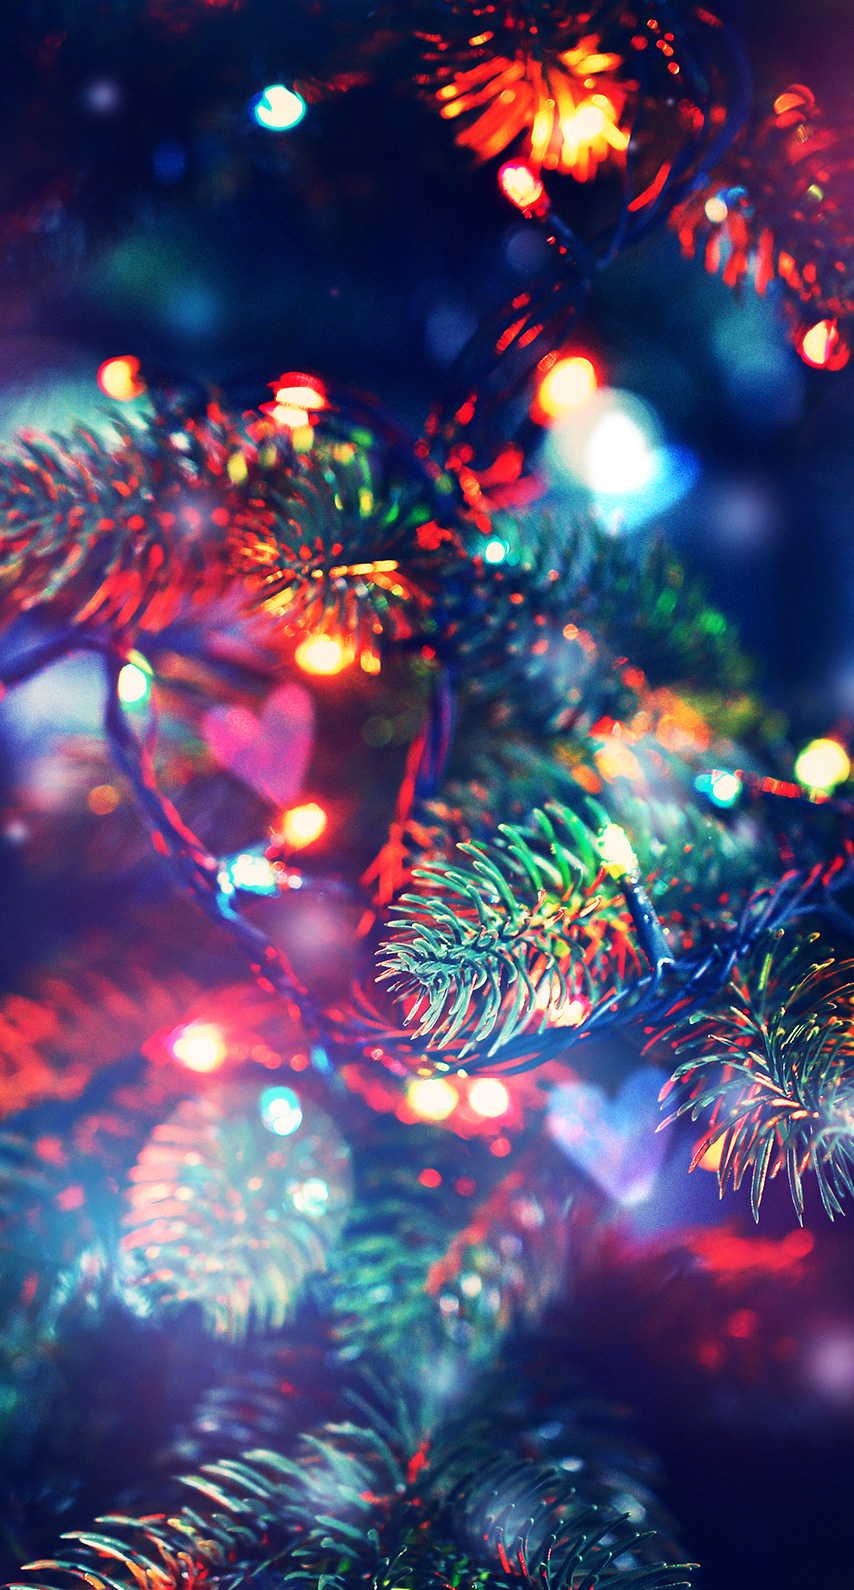 eve, festival, computer wallpaper, fête, Christmas, christmas decoration, event, christmas lights, New Year